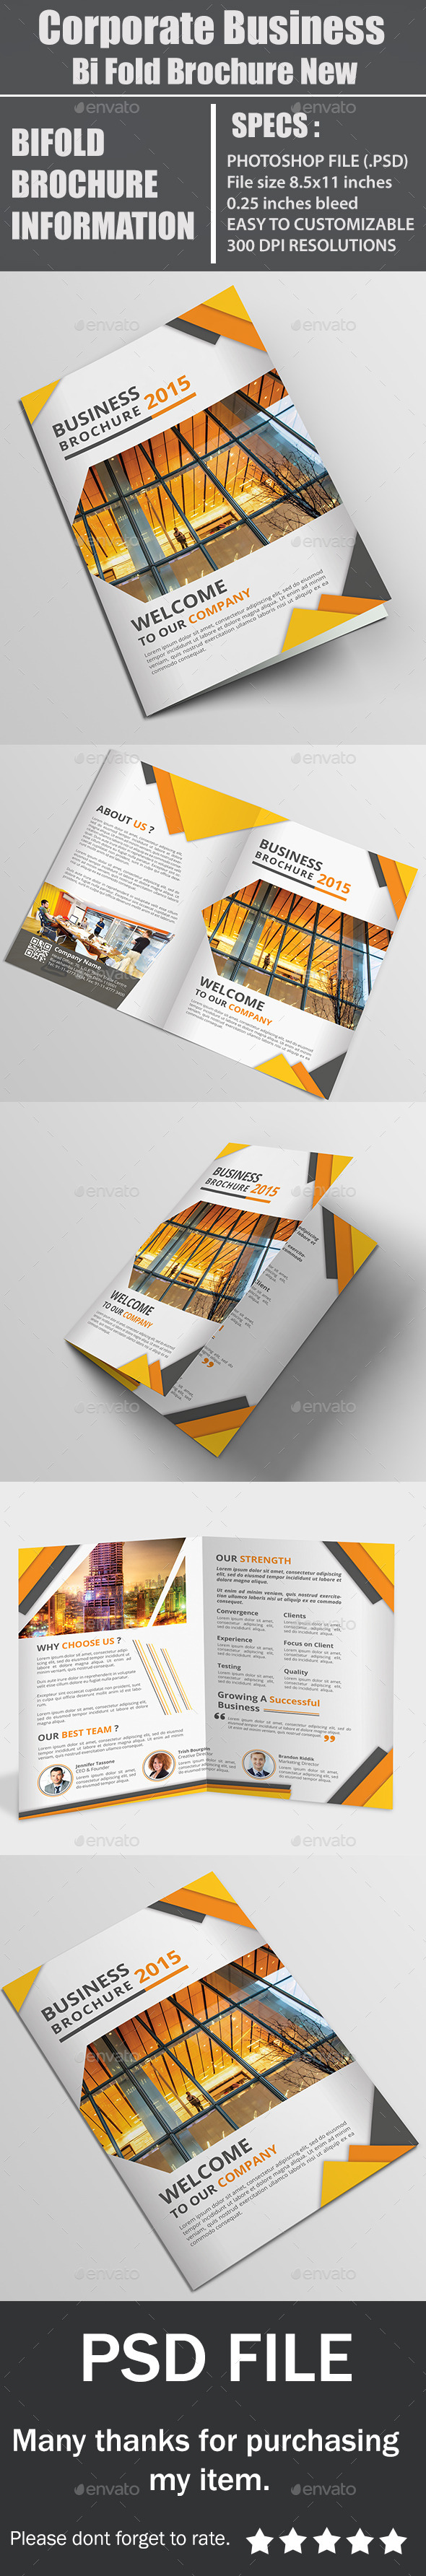 GraphicRiver Corporate Business Bi Fold Brochure New 11957653